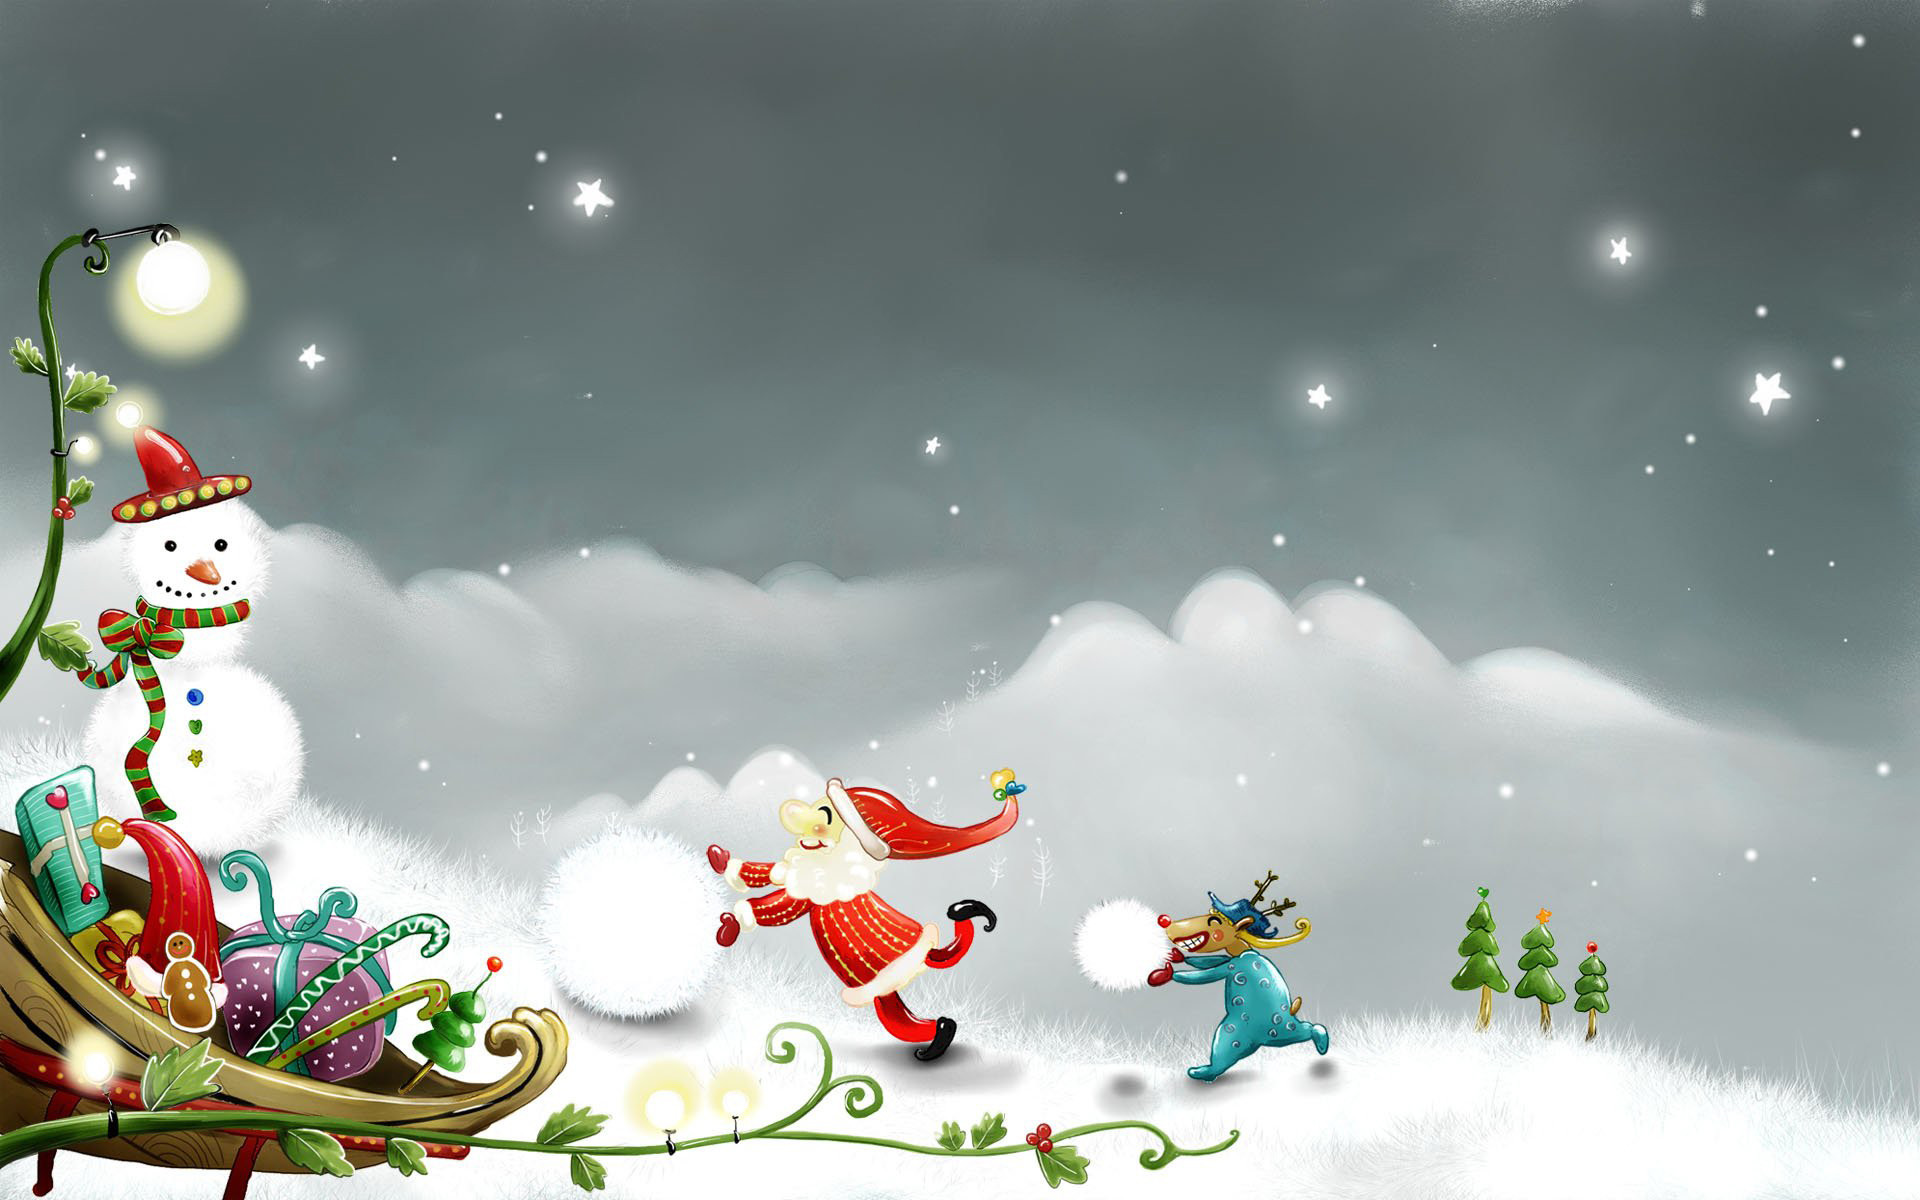 Download merry Christmas background.